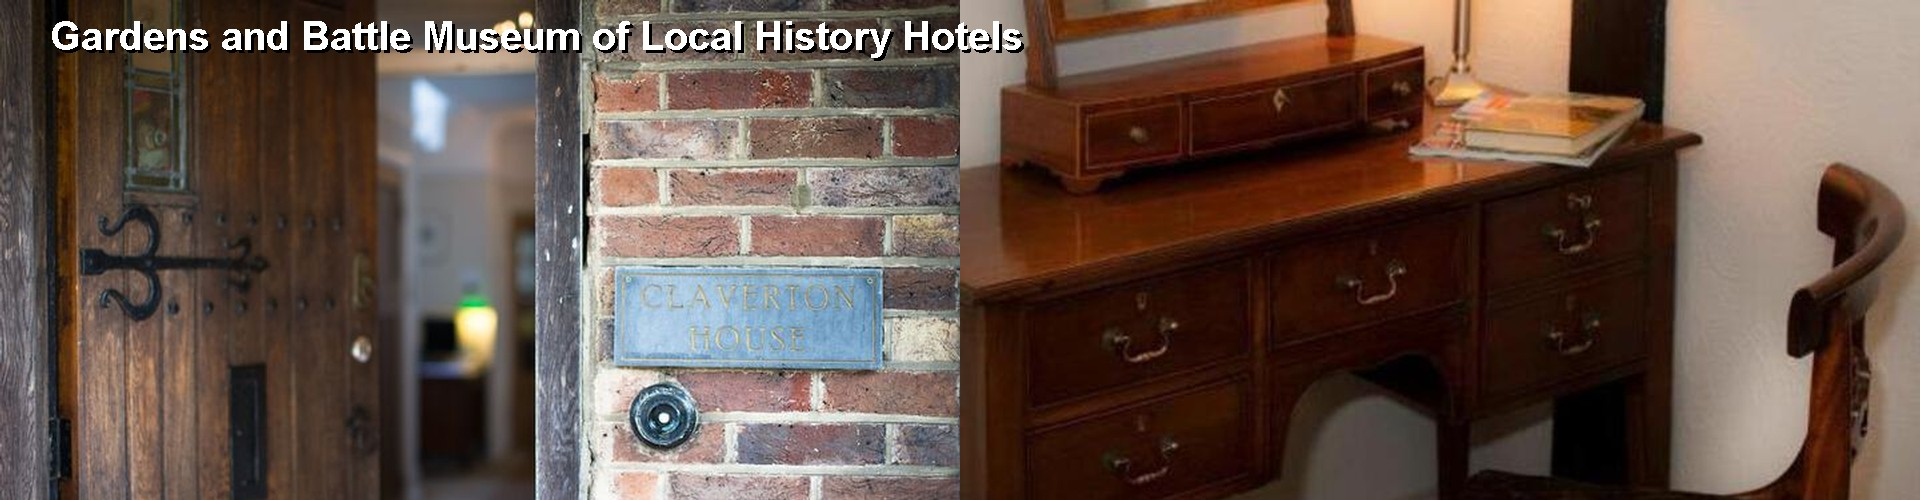 2 Best Hotels near Gardens and Battle Museum of Local History